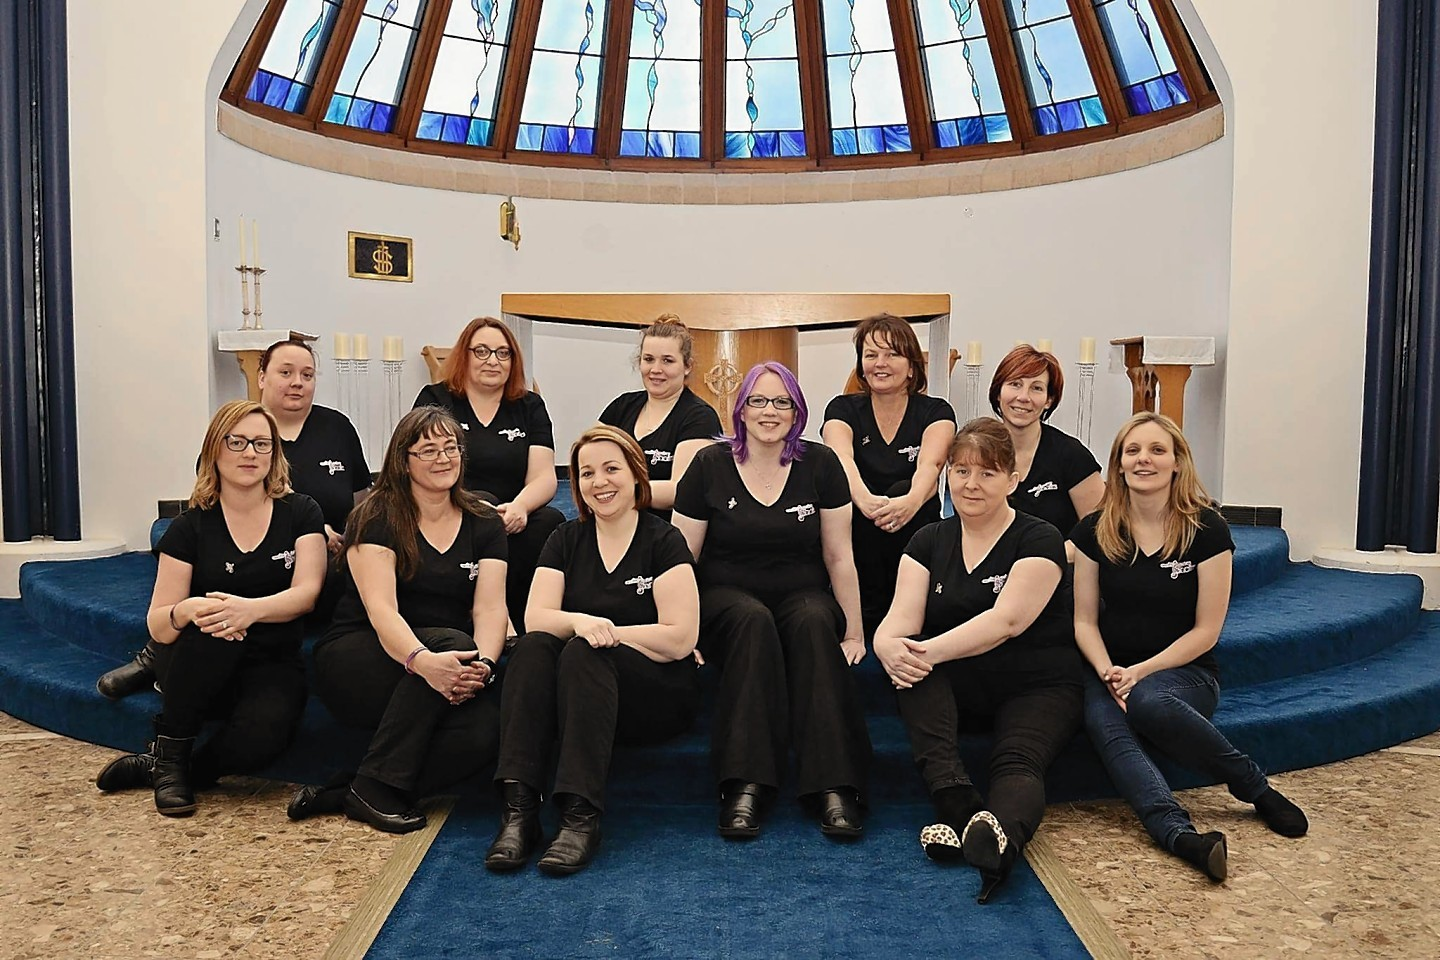 Lossiemouth military wives